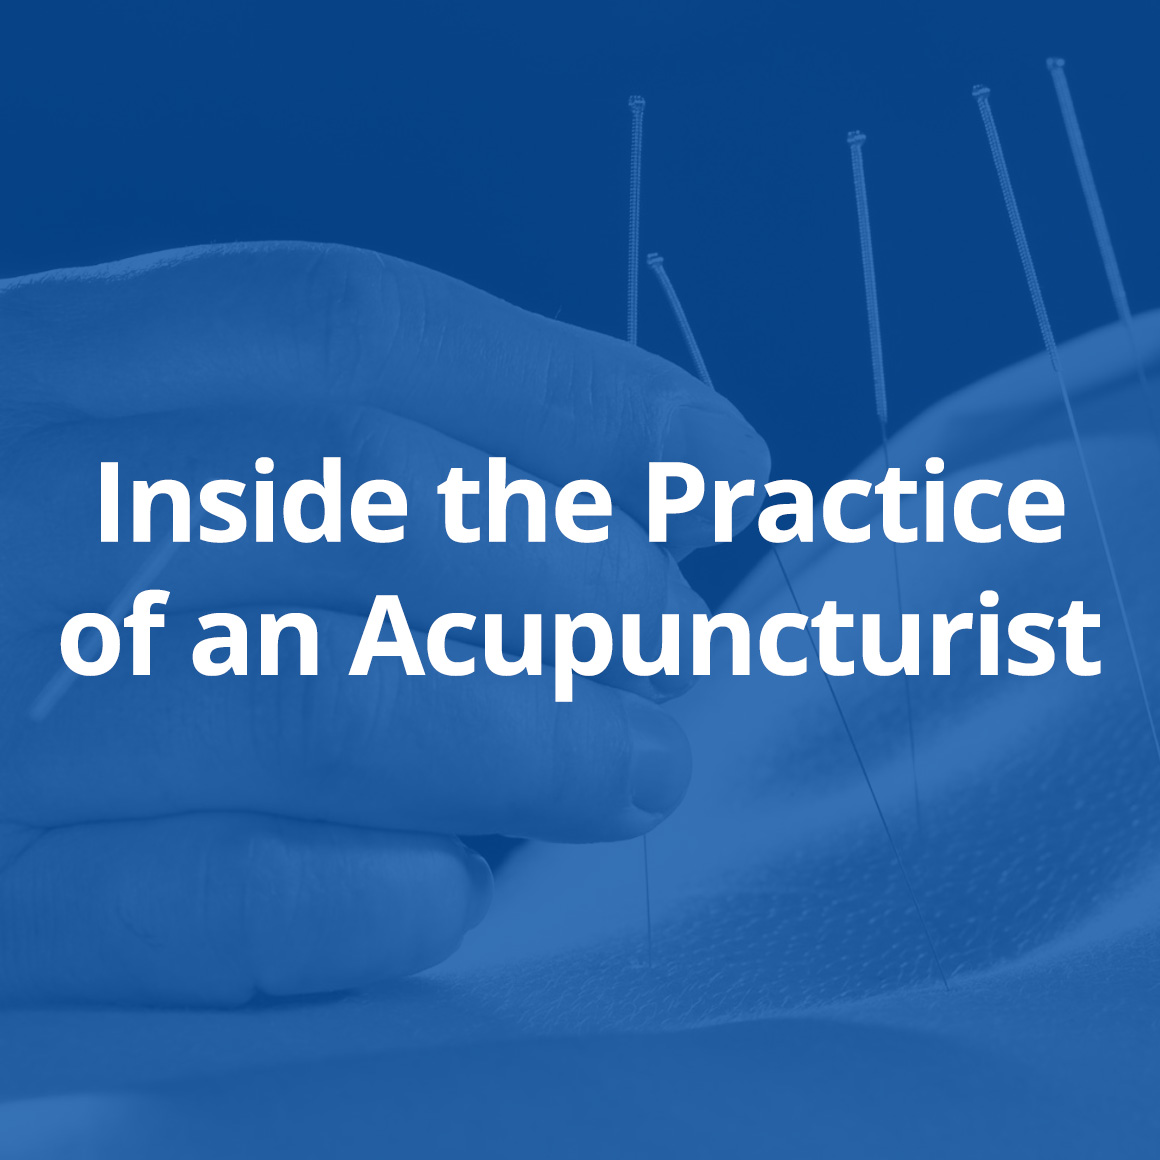 inside-the-practice-of-an-acupuncturist